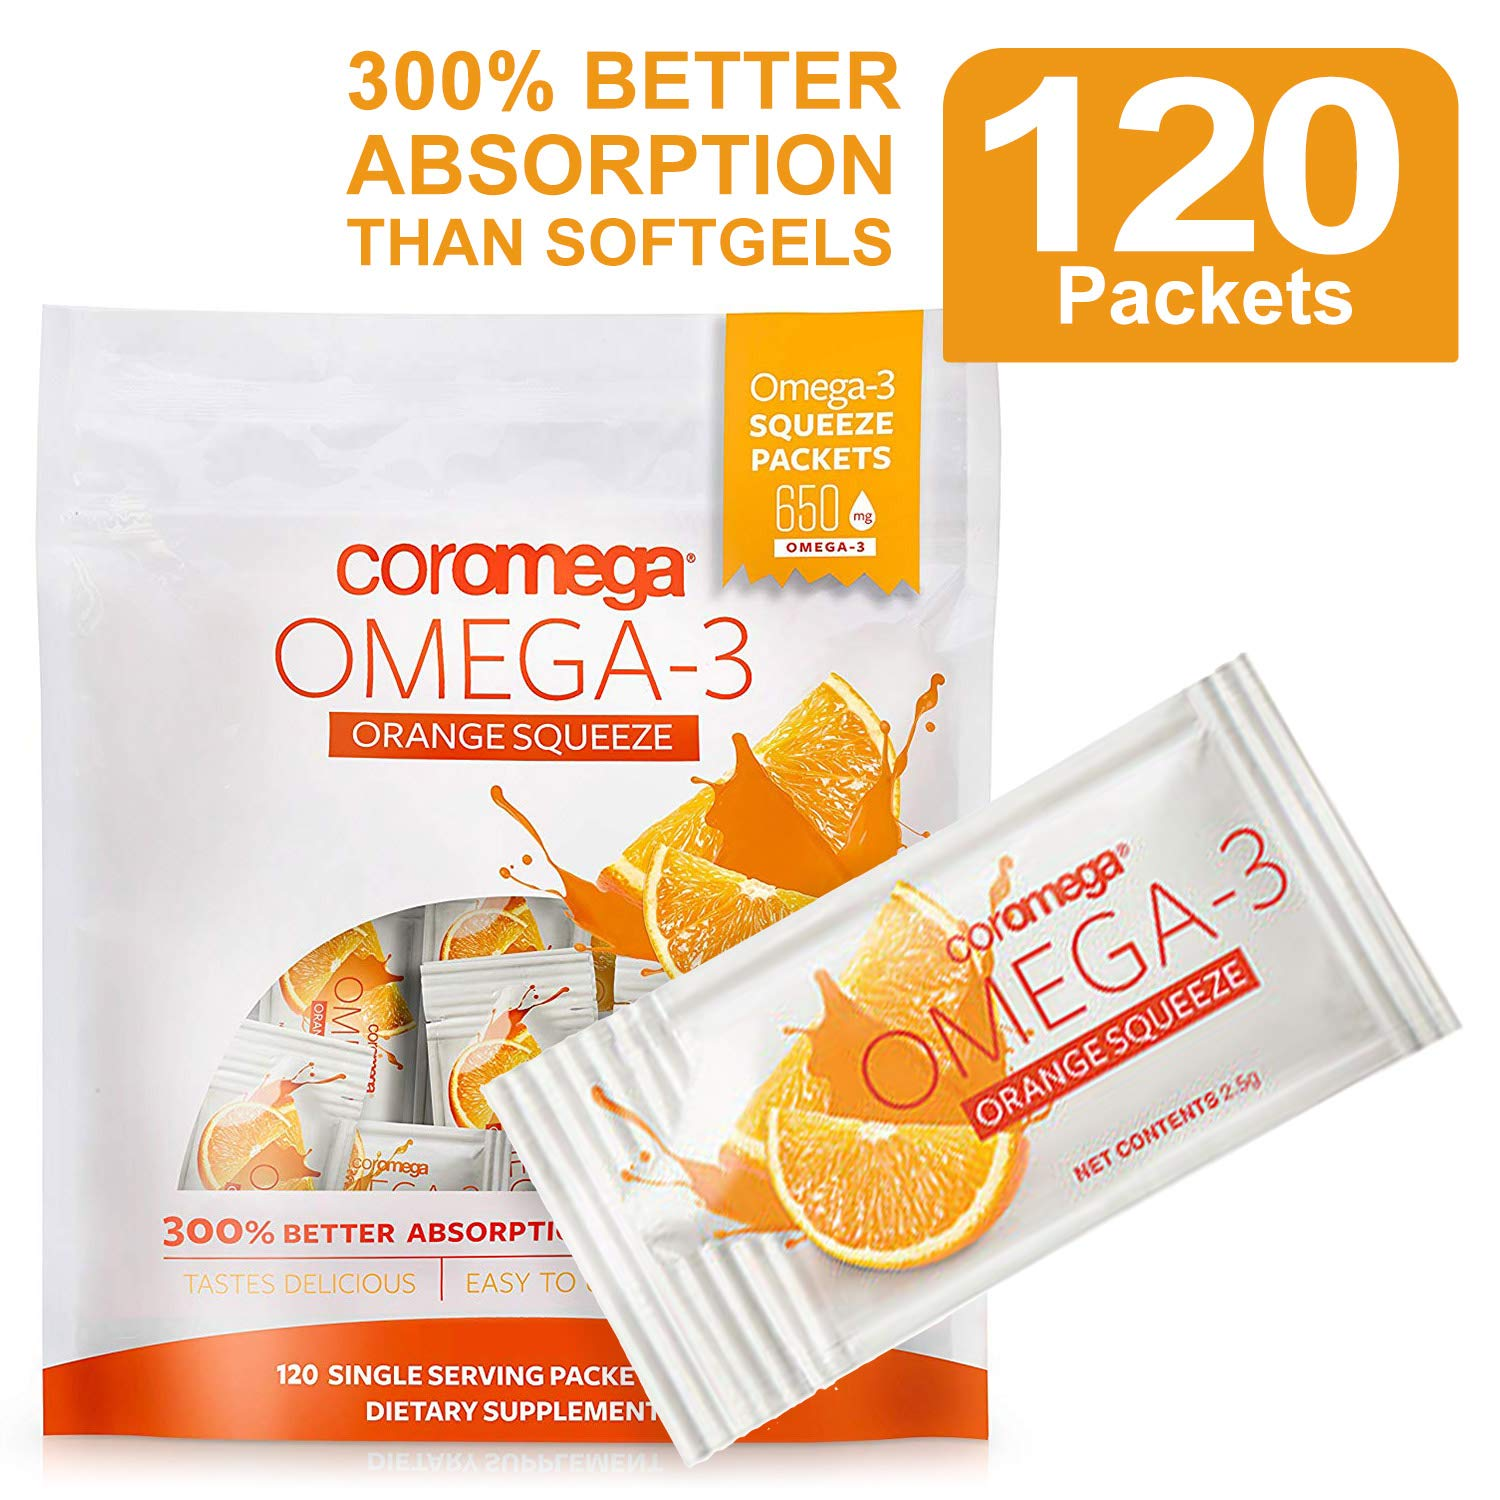 Coromega Omega 3 Fish Oil Supplement, 650mg of Omega-3s with 3X Better Absorption Than Softgels, Orange Flavor, 120 Single Serve Squeeze Packets by Coromega